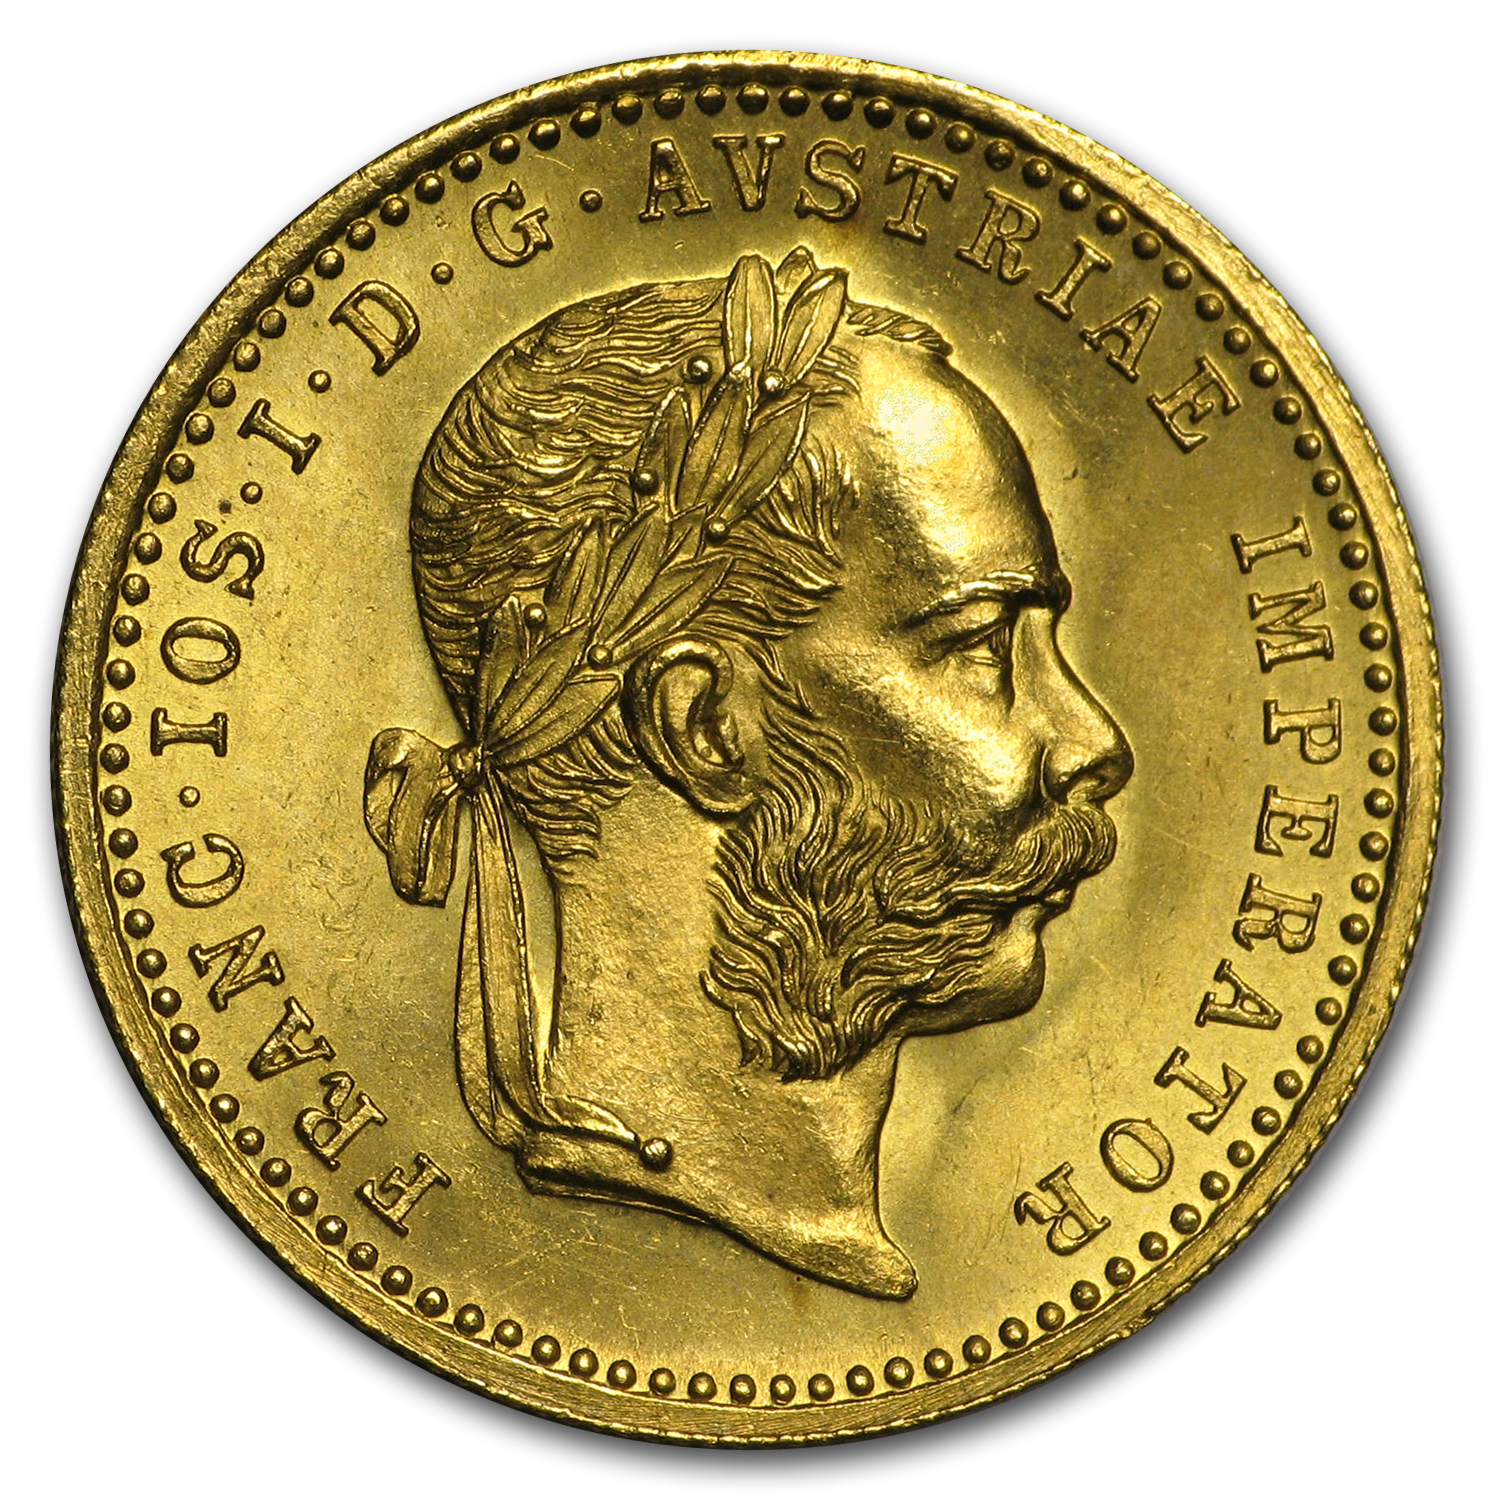 Austria Gold - 1 Ducats (Almost Uncirculated)